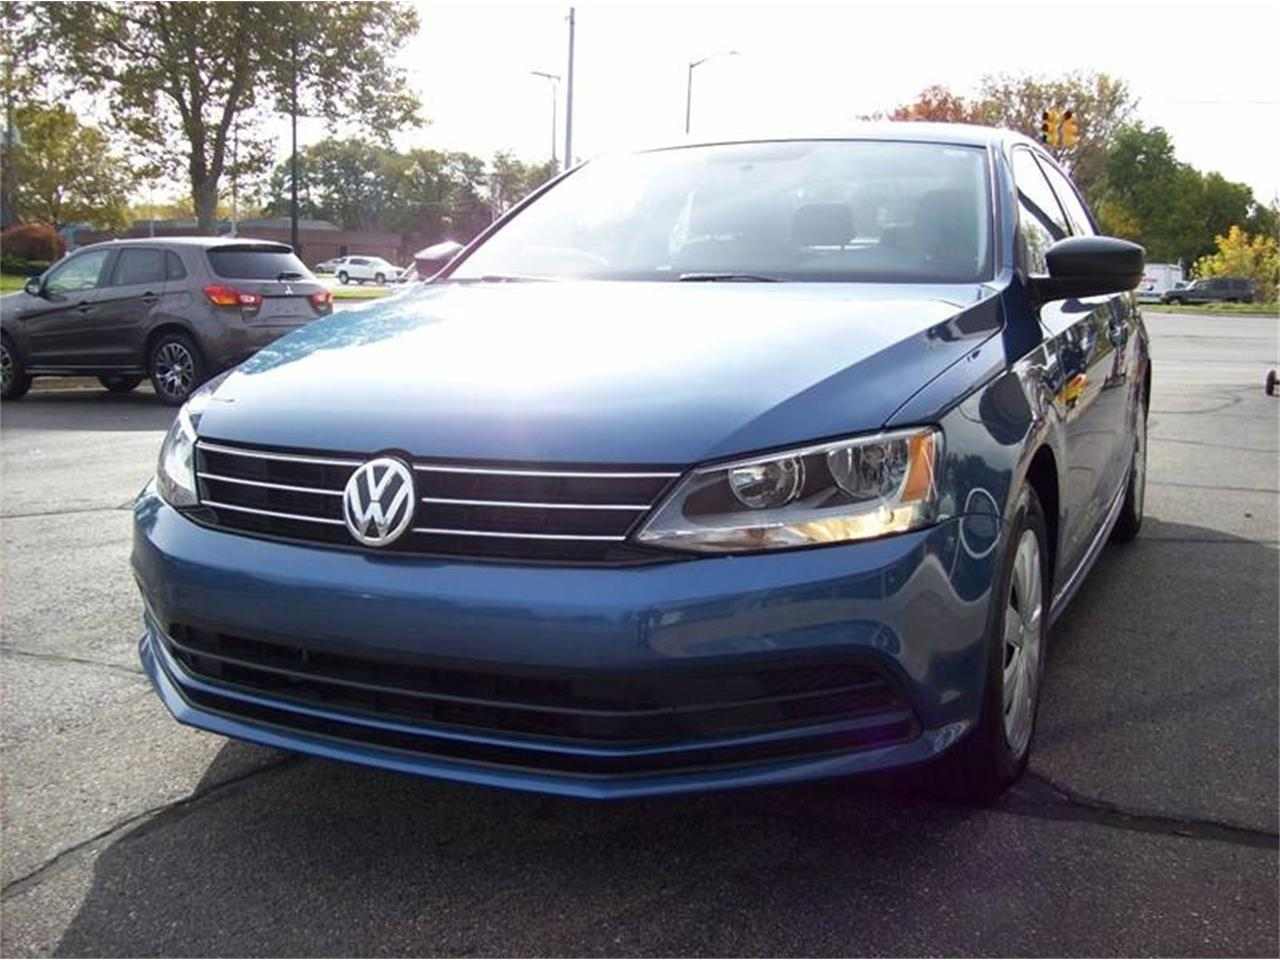 Large Picture of 2015 Jetta - $10,995.00 Offered by Verhage Mitsubishi - M6XO